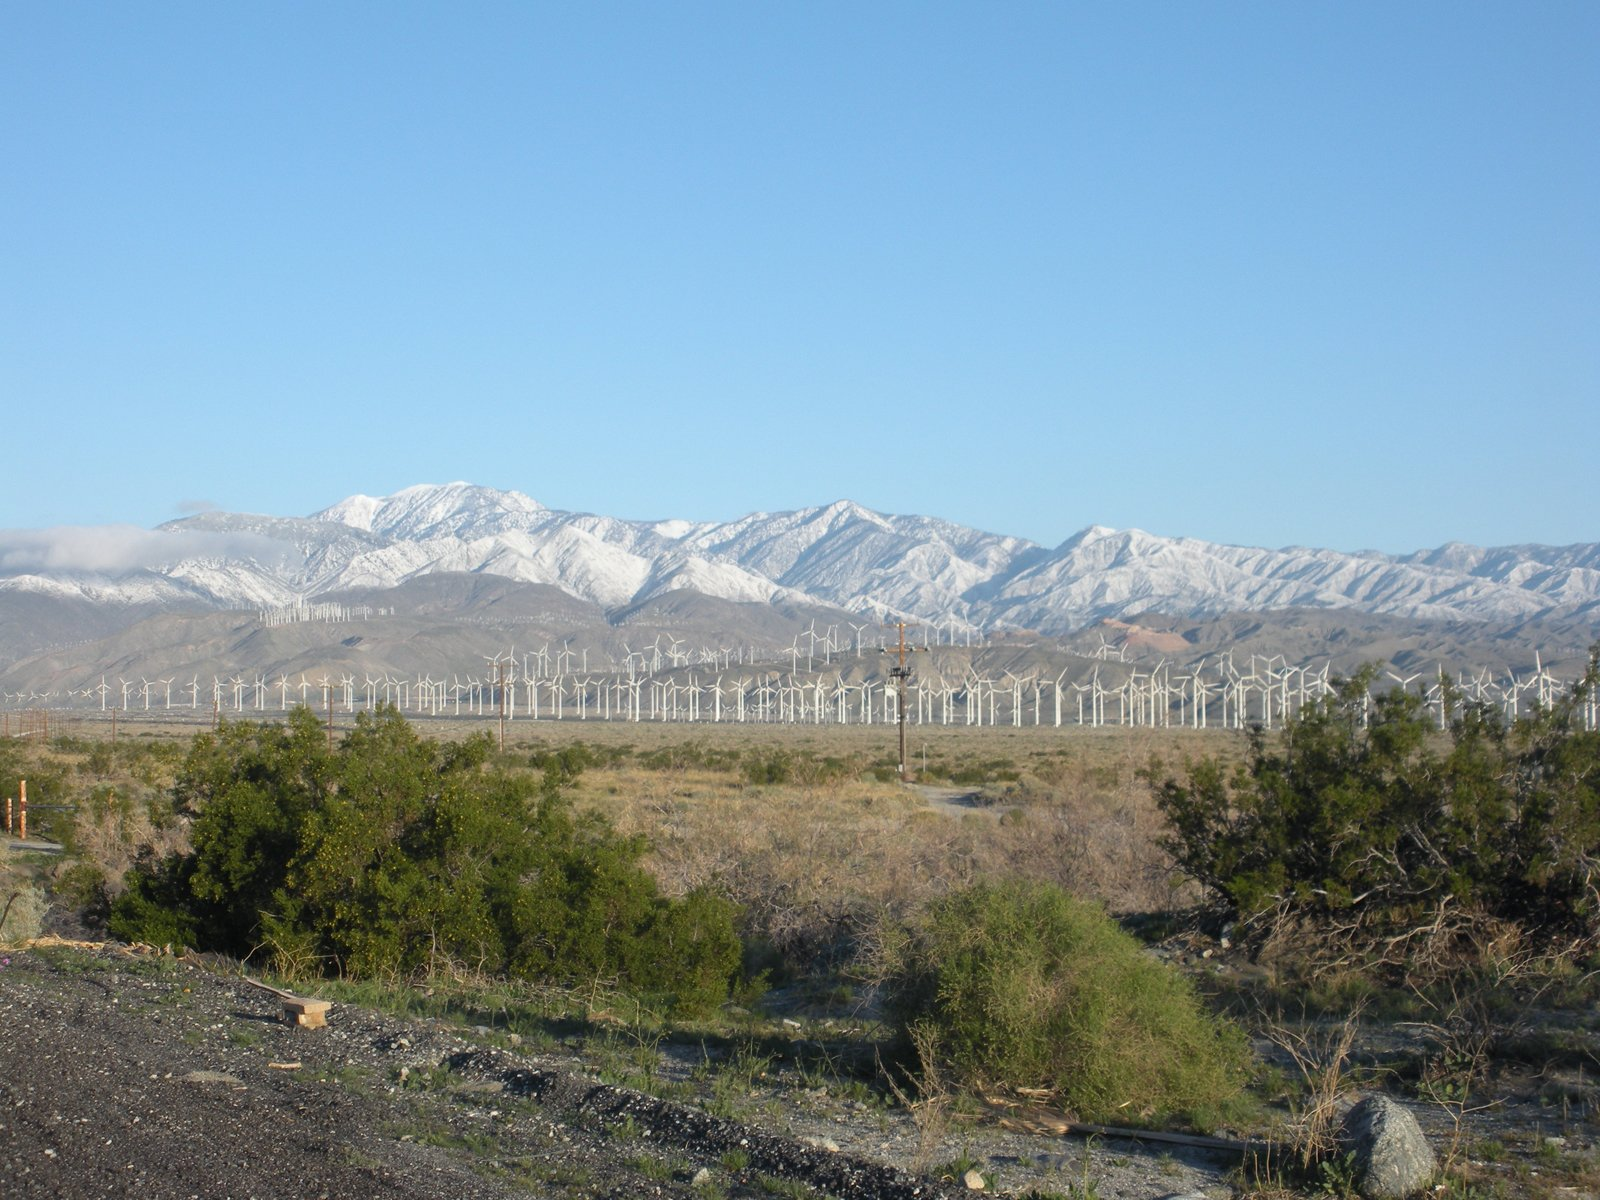 Wind turbines cover the landscape just north of Palm Springs.  Photo 5 of 7 in Palm Springs, California